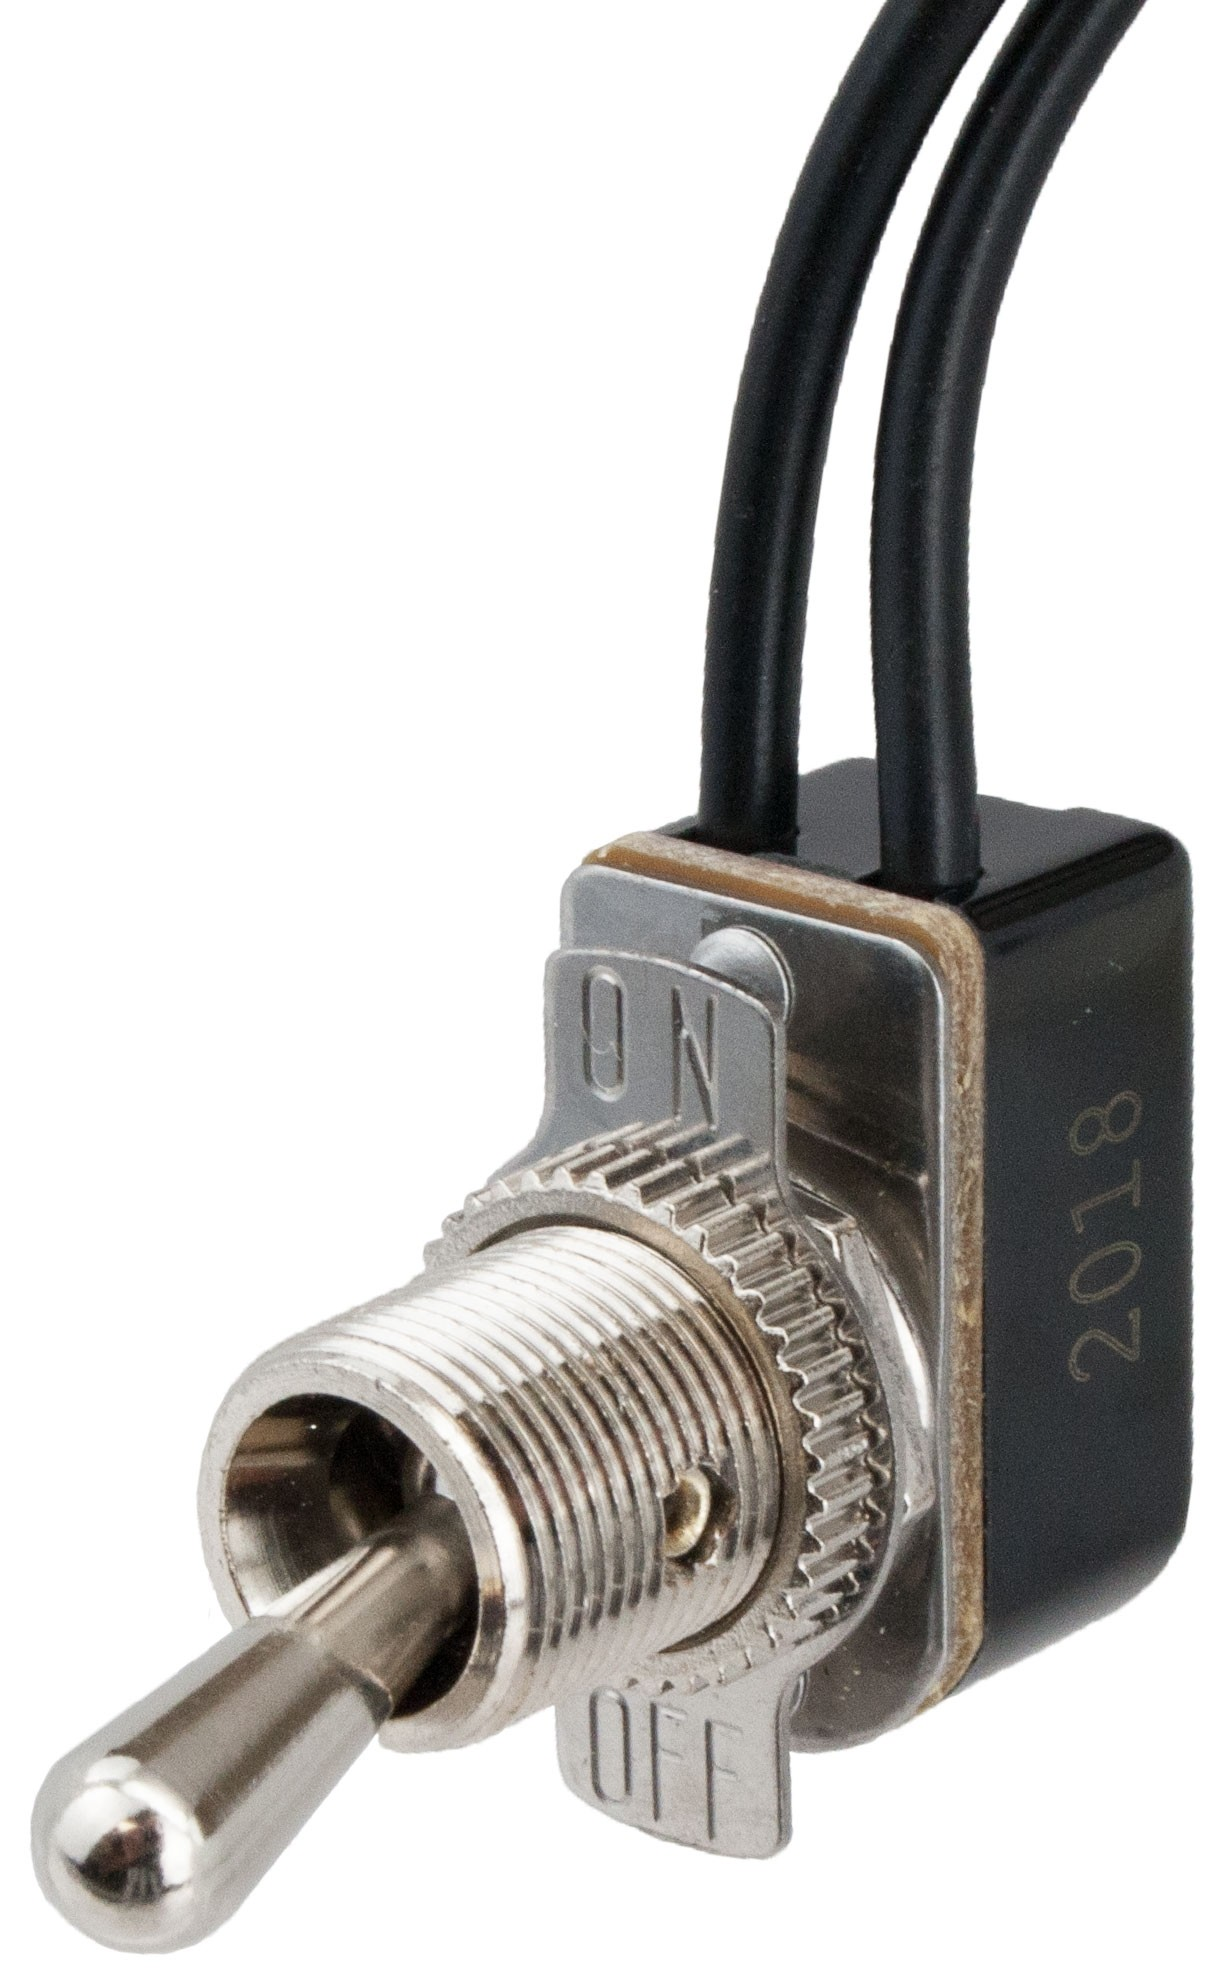 SPST Toggle Switch with Two 6 inch Wire Leads ON/OFF | 765073